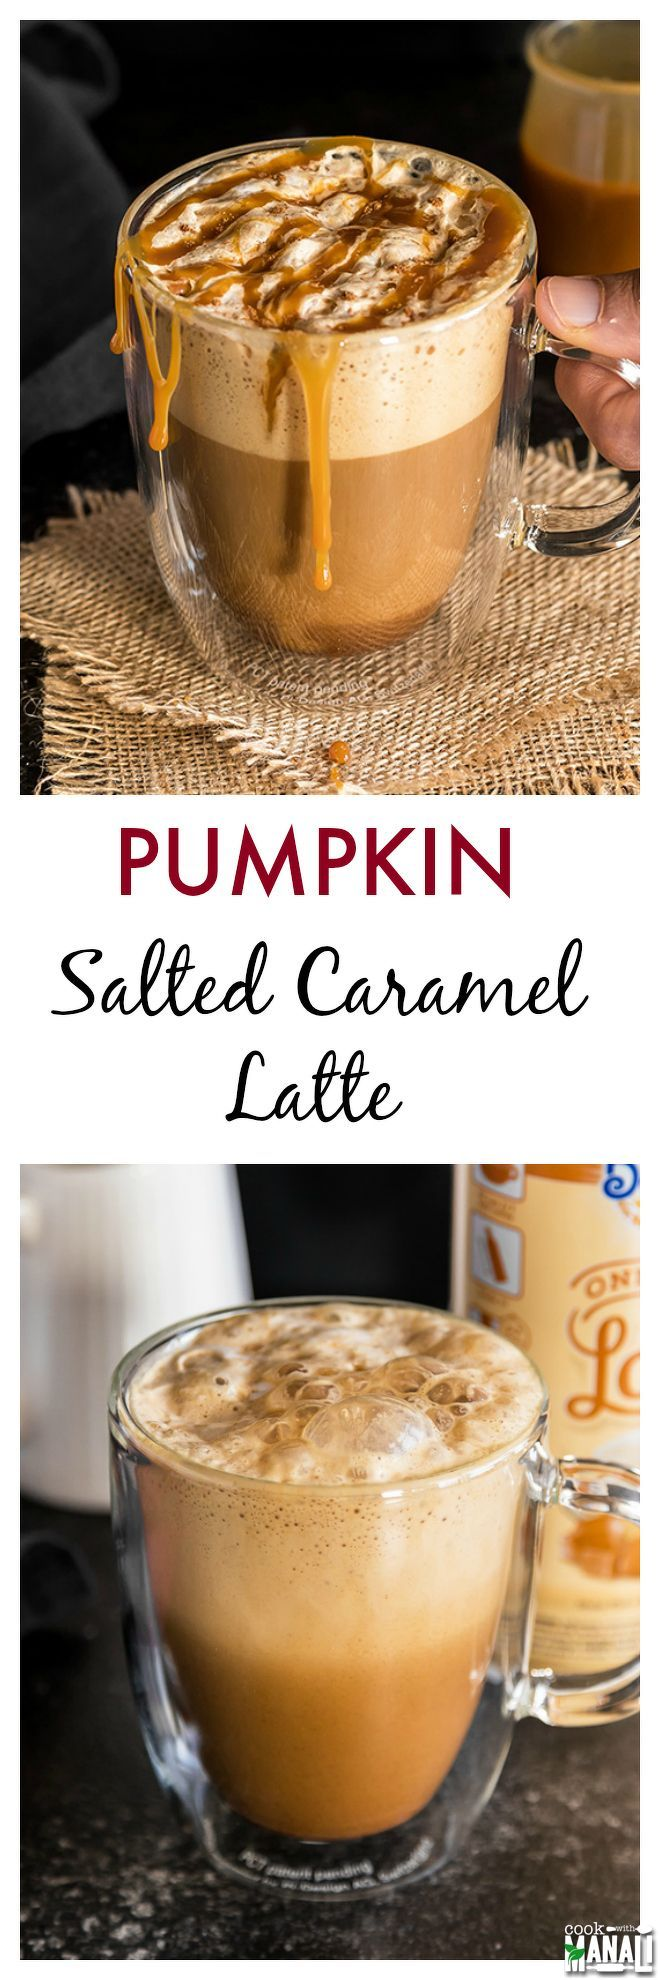 Pumpkin Salted Caramel Latte Made With Real Pumpkin And